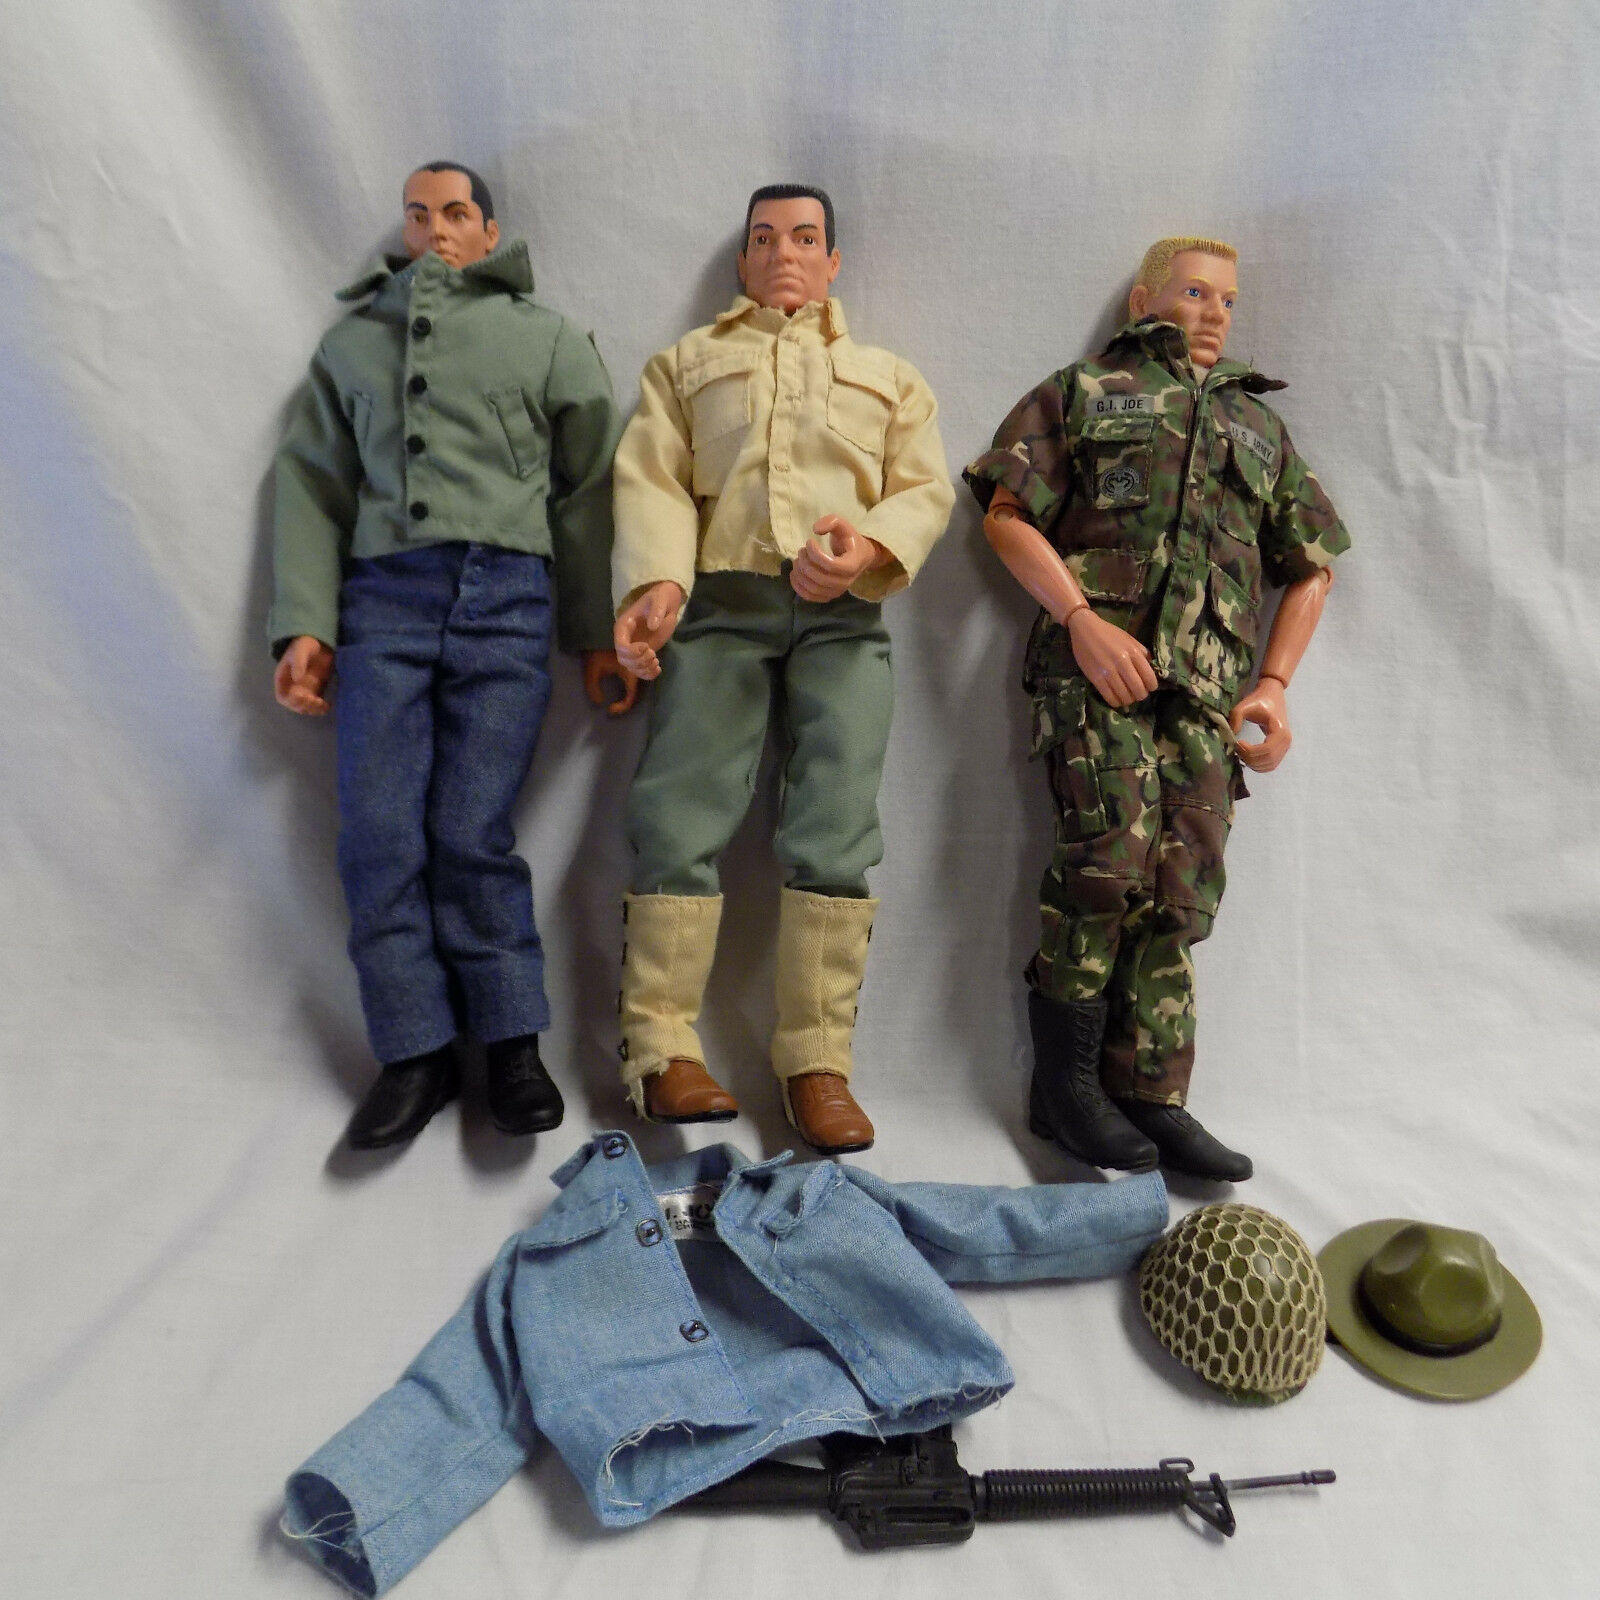 GI Joe Lot of 3 Military Action Action Action Figures 1990s Some Accessories 212b61